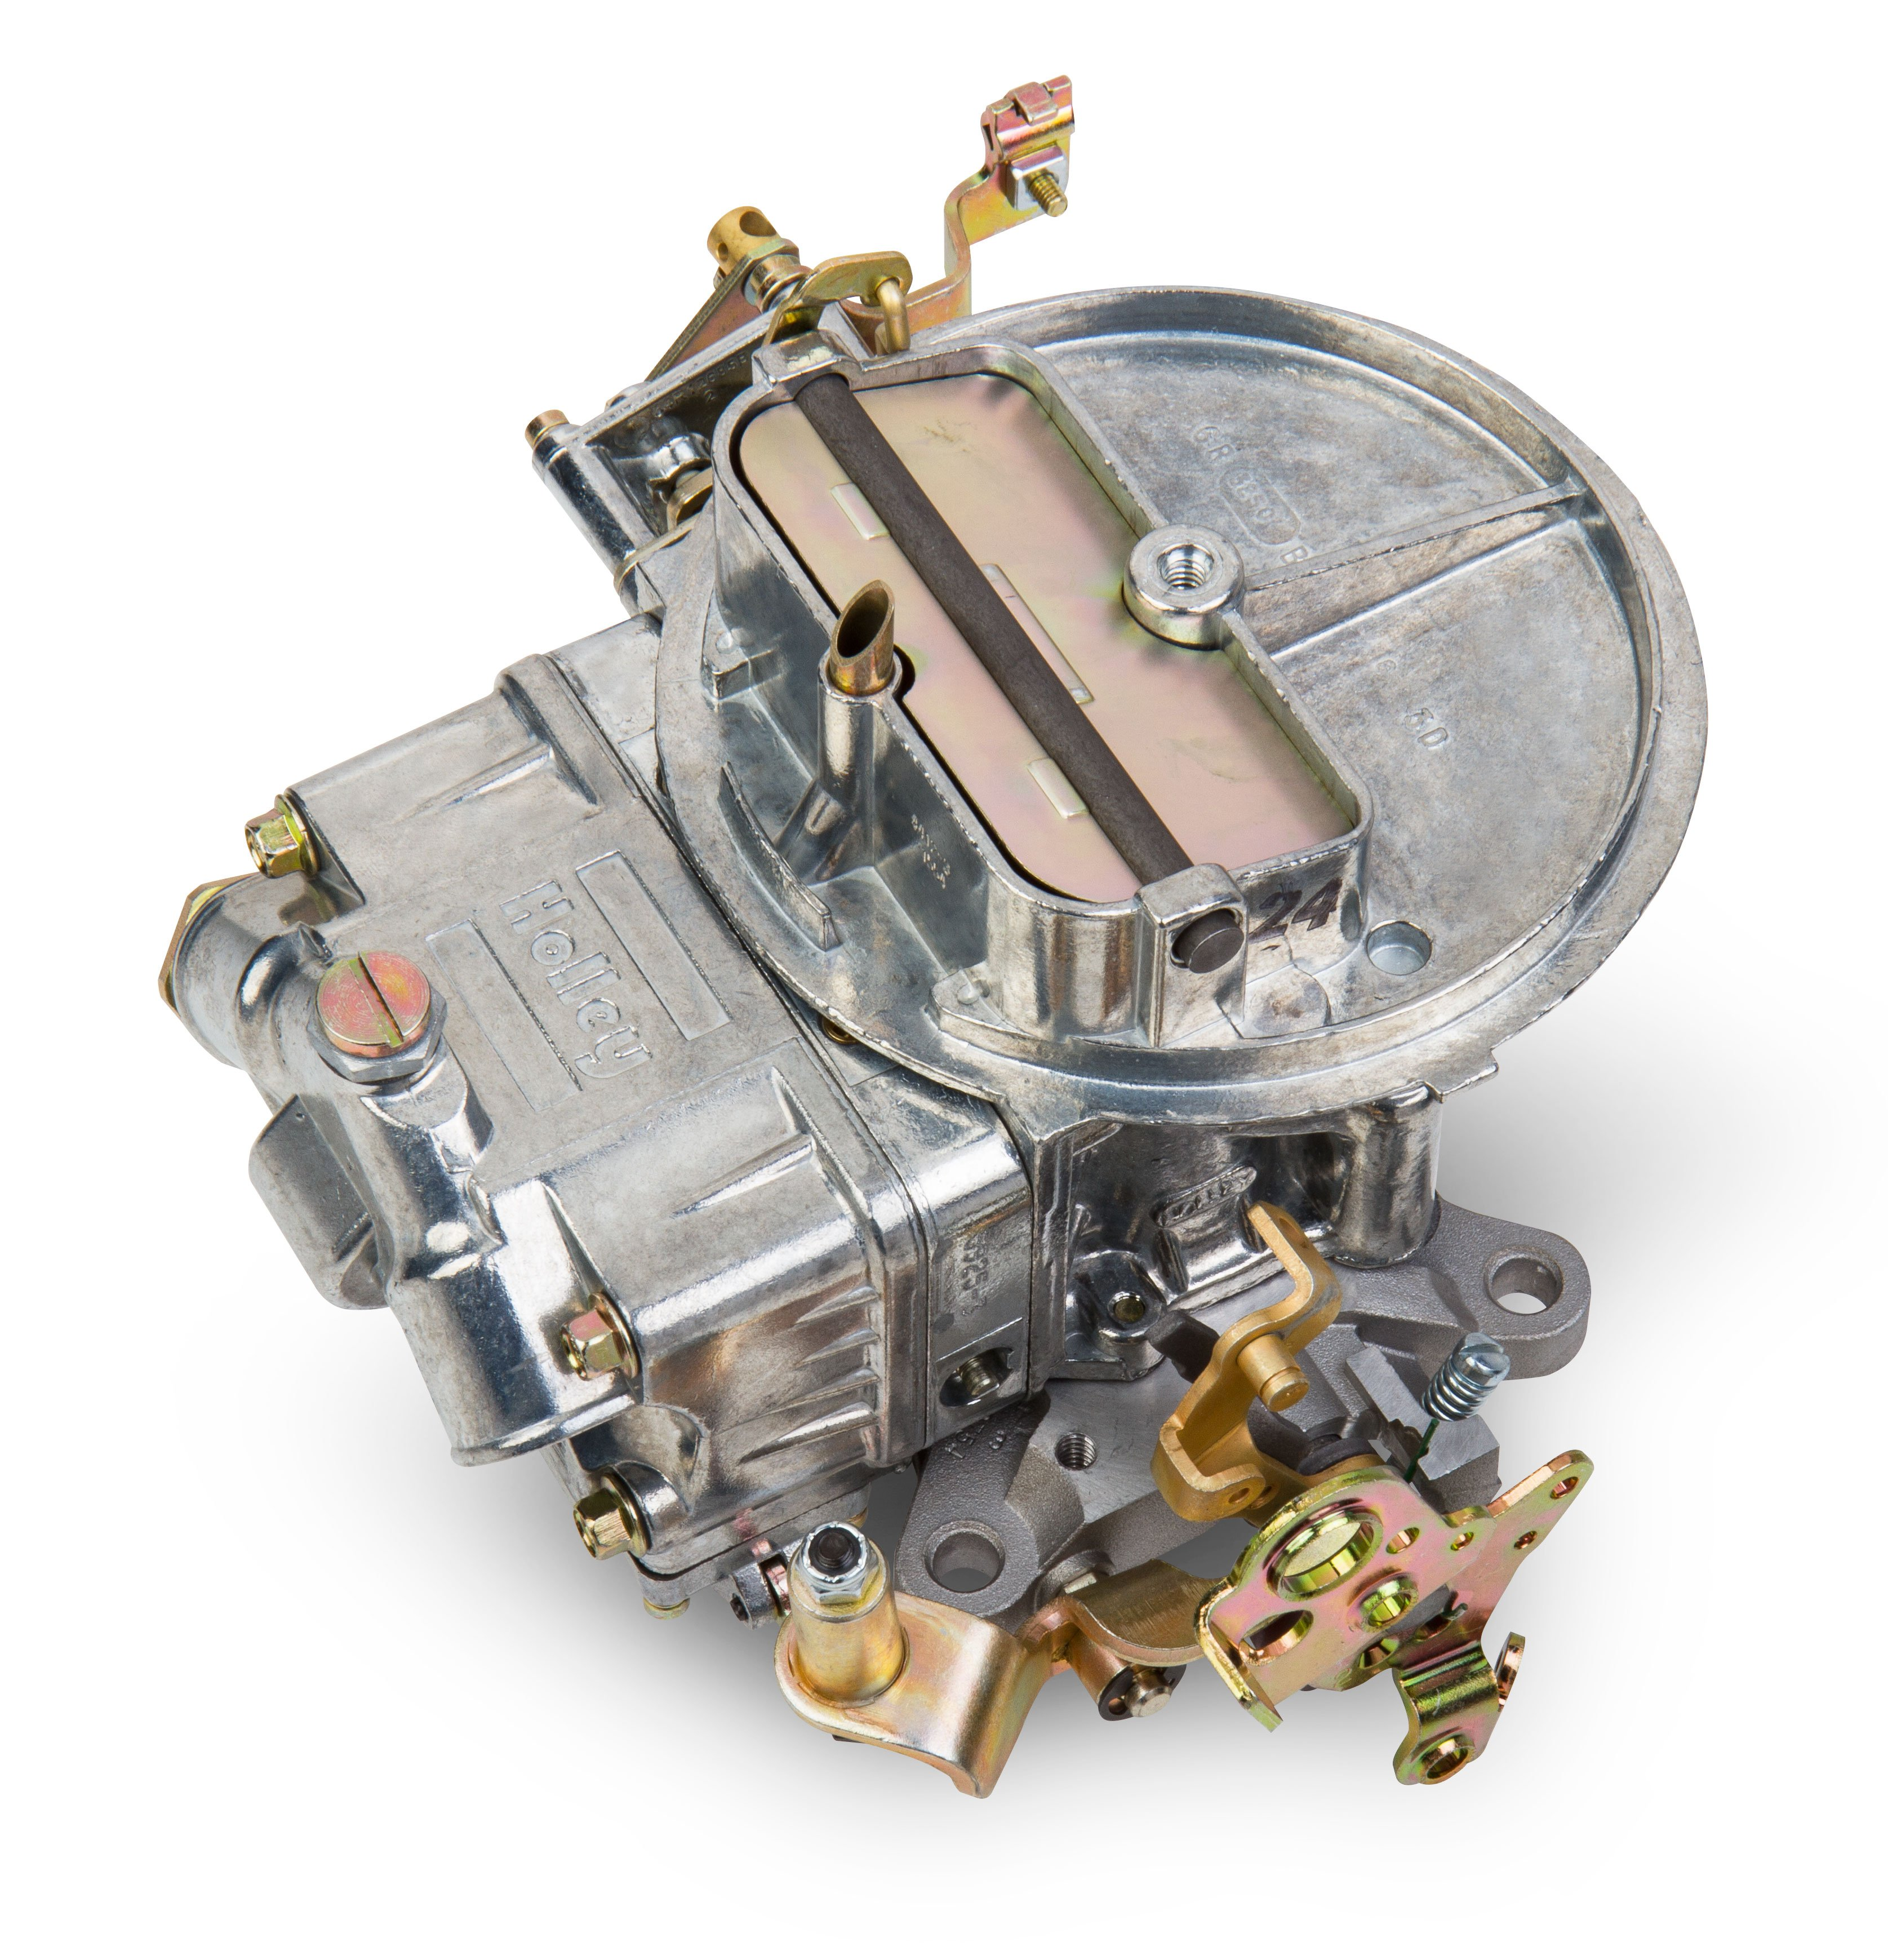 500 CFM Performance 2BBL Carburetor. 500 CFM Performance 2BBL Carburetor. Manual  Choke Shiny Finish